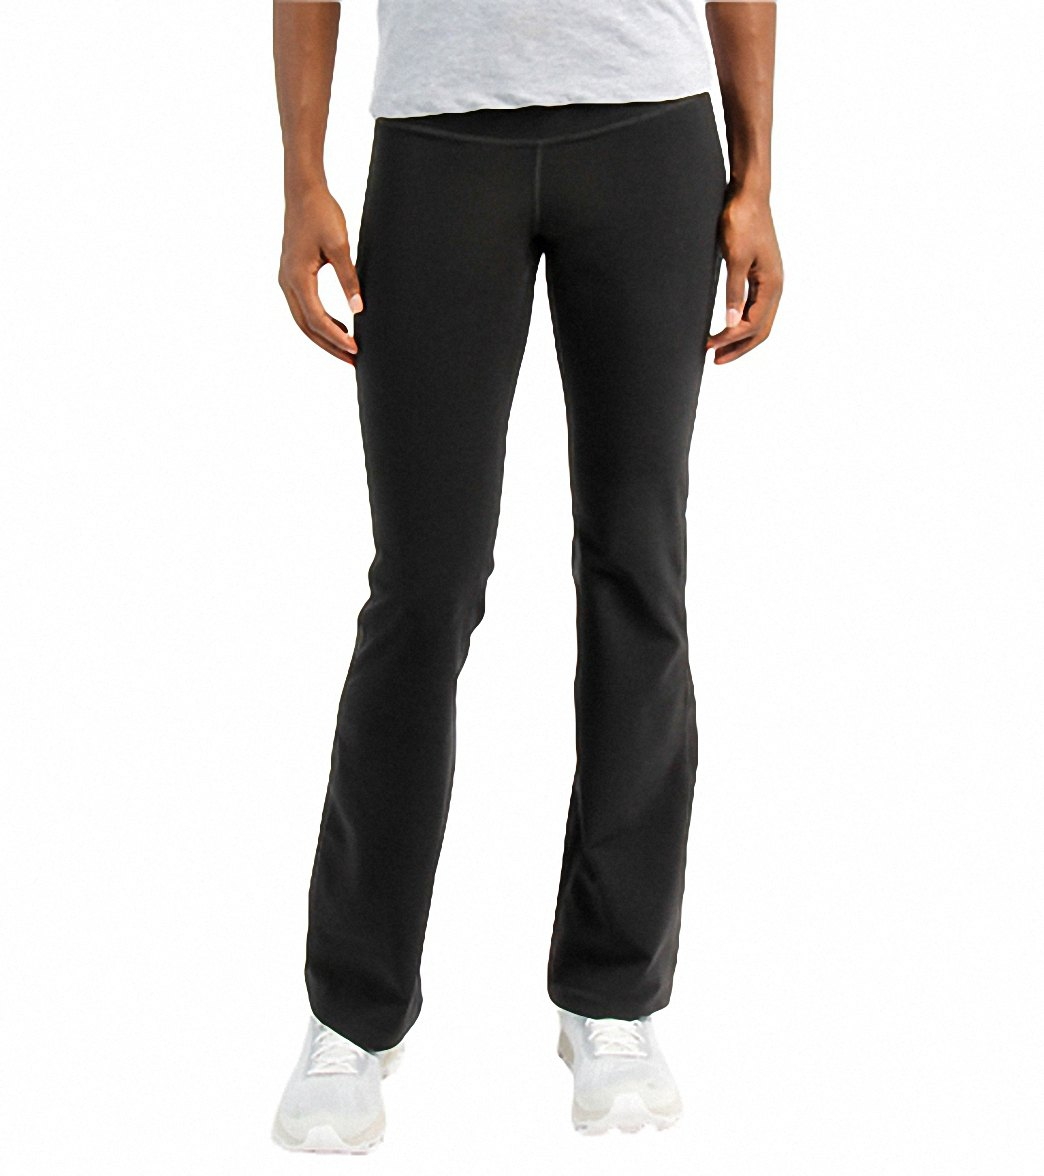 db680a61a36ae ... New Balance Women's Ultimate Bootcut Running Pant. Play Video. MODEL  MEASUREMENTS